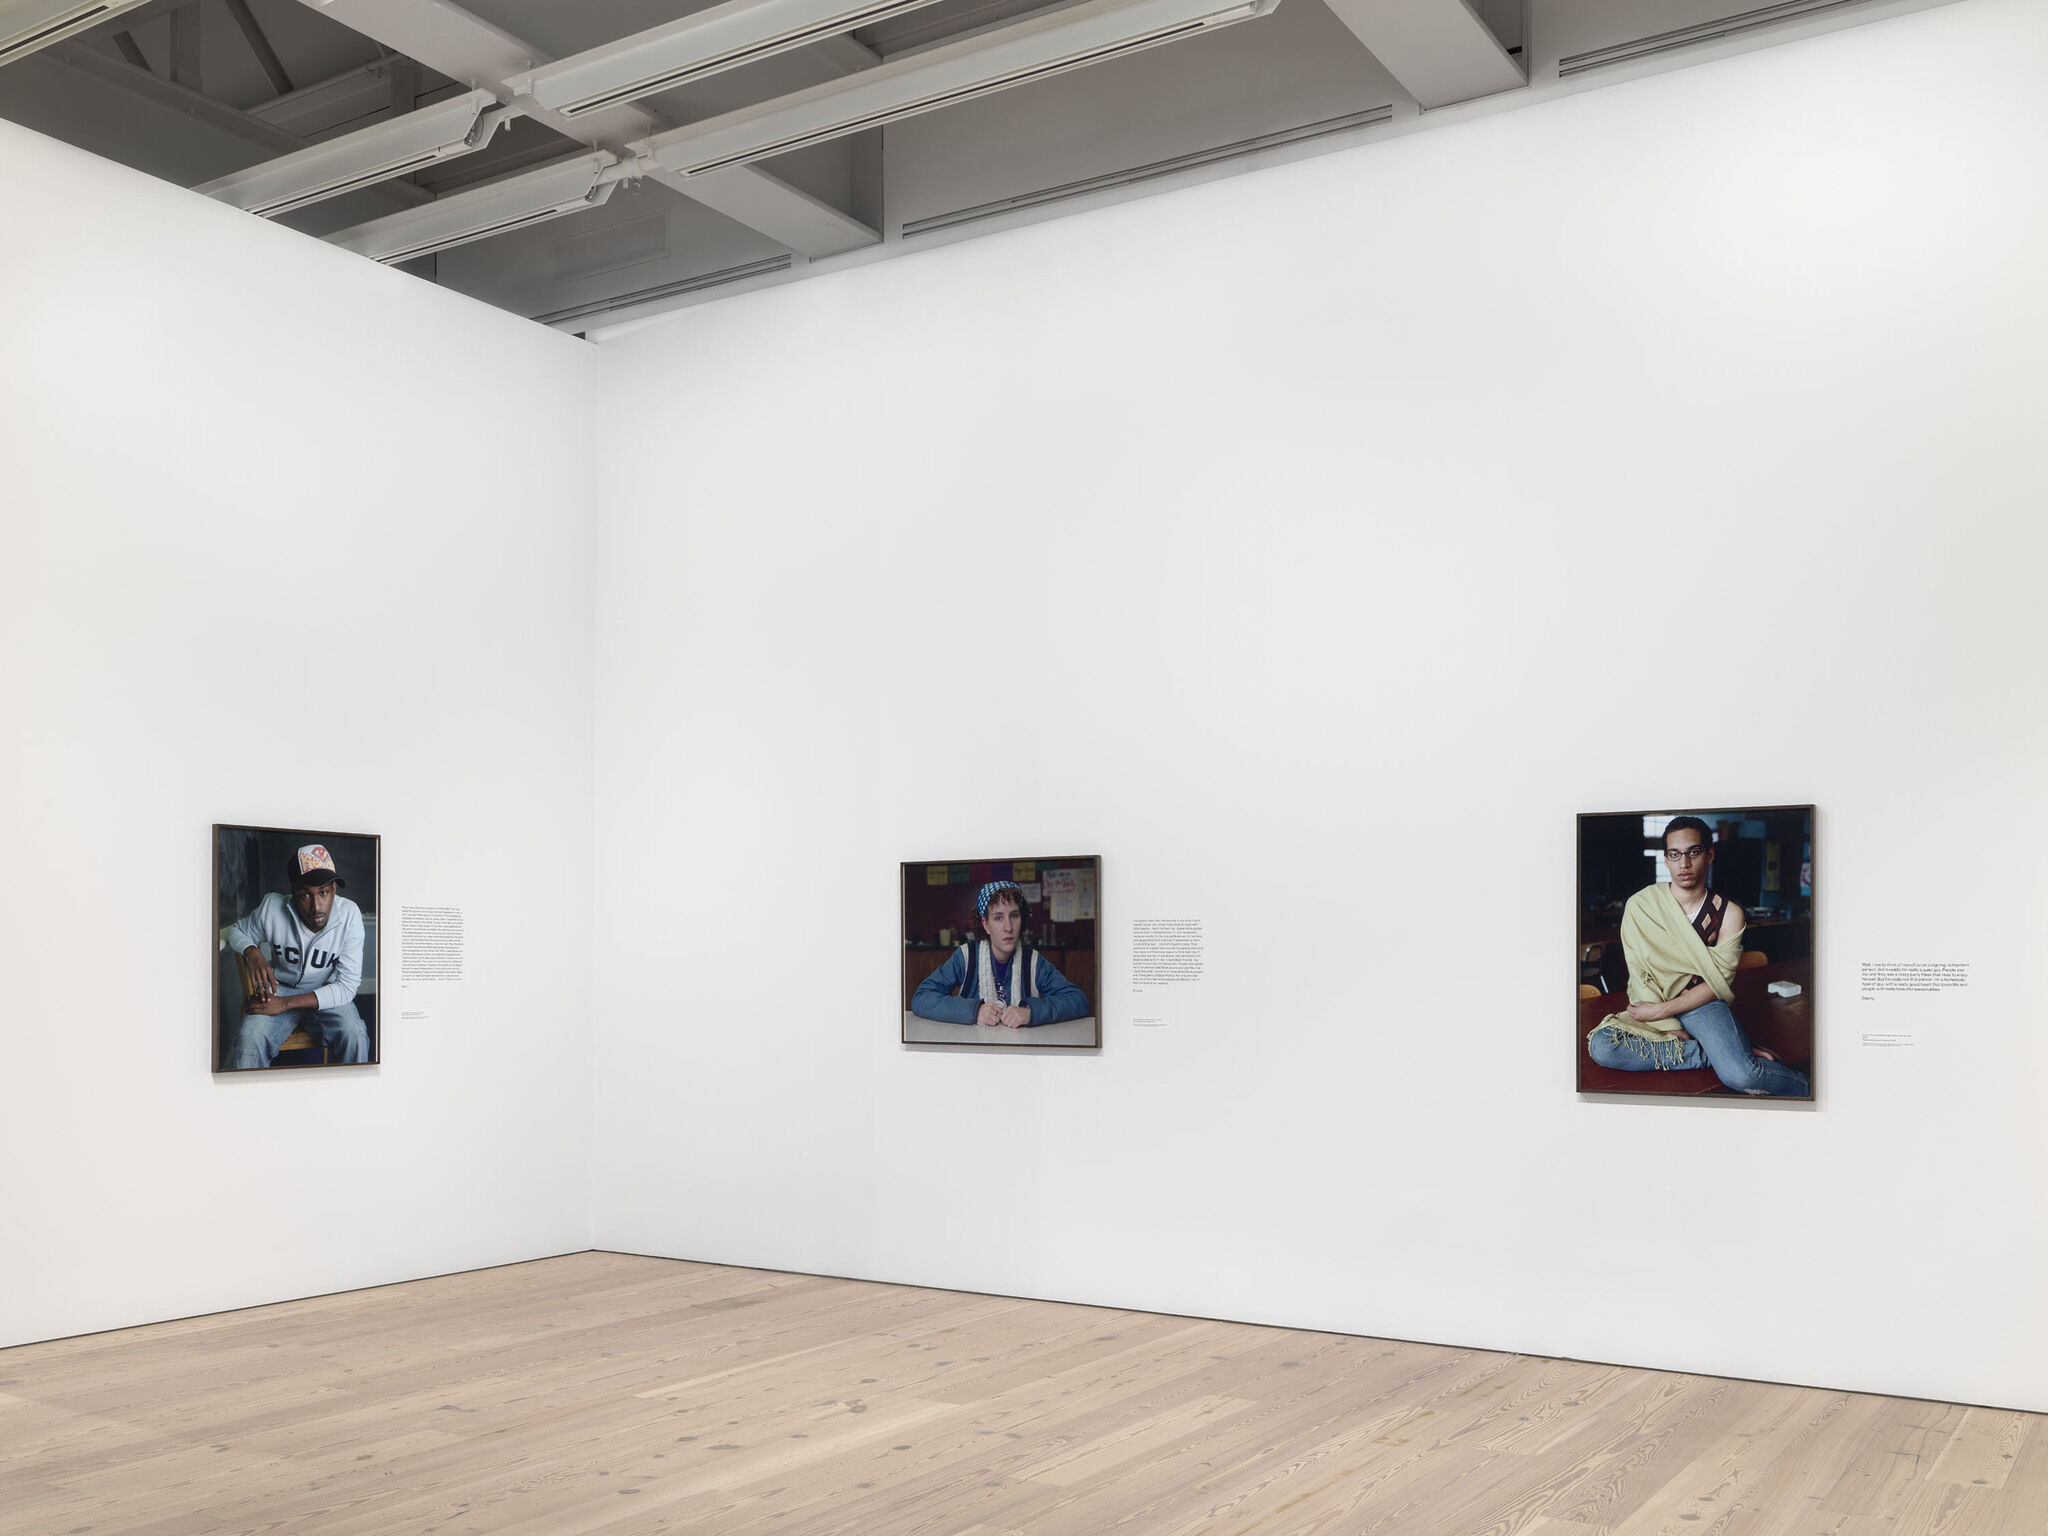 A corner of a main exhibition room with pieces from the Dawoud Bey exhibition mounted against white walls.